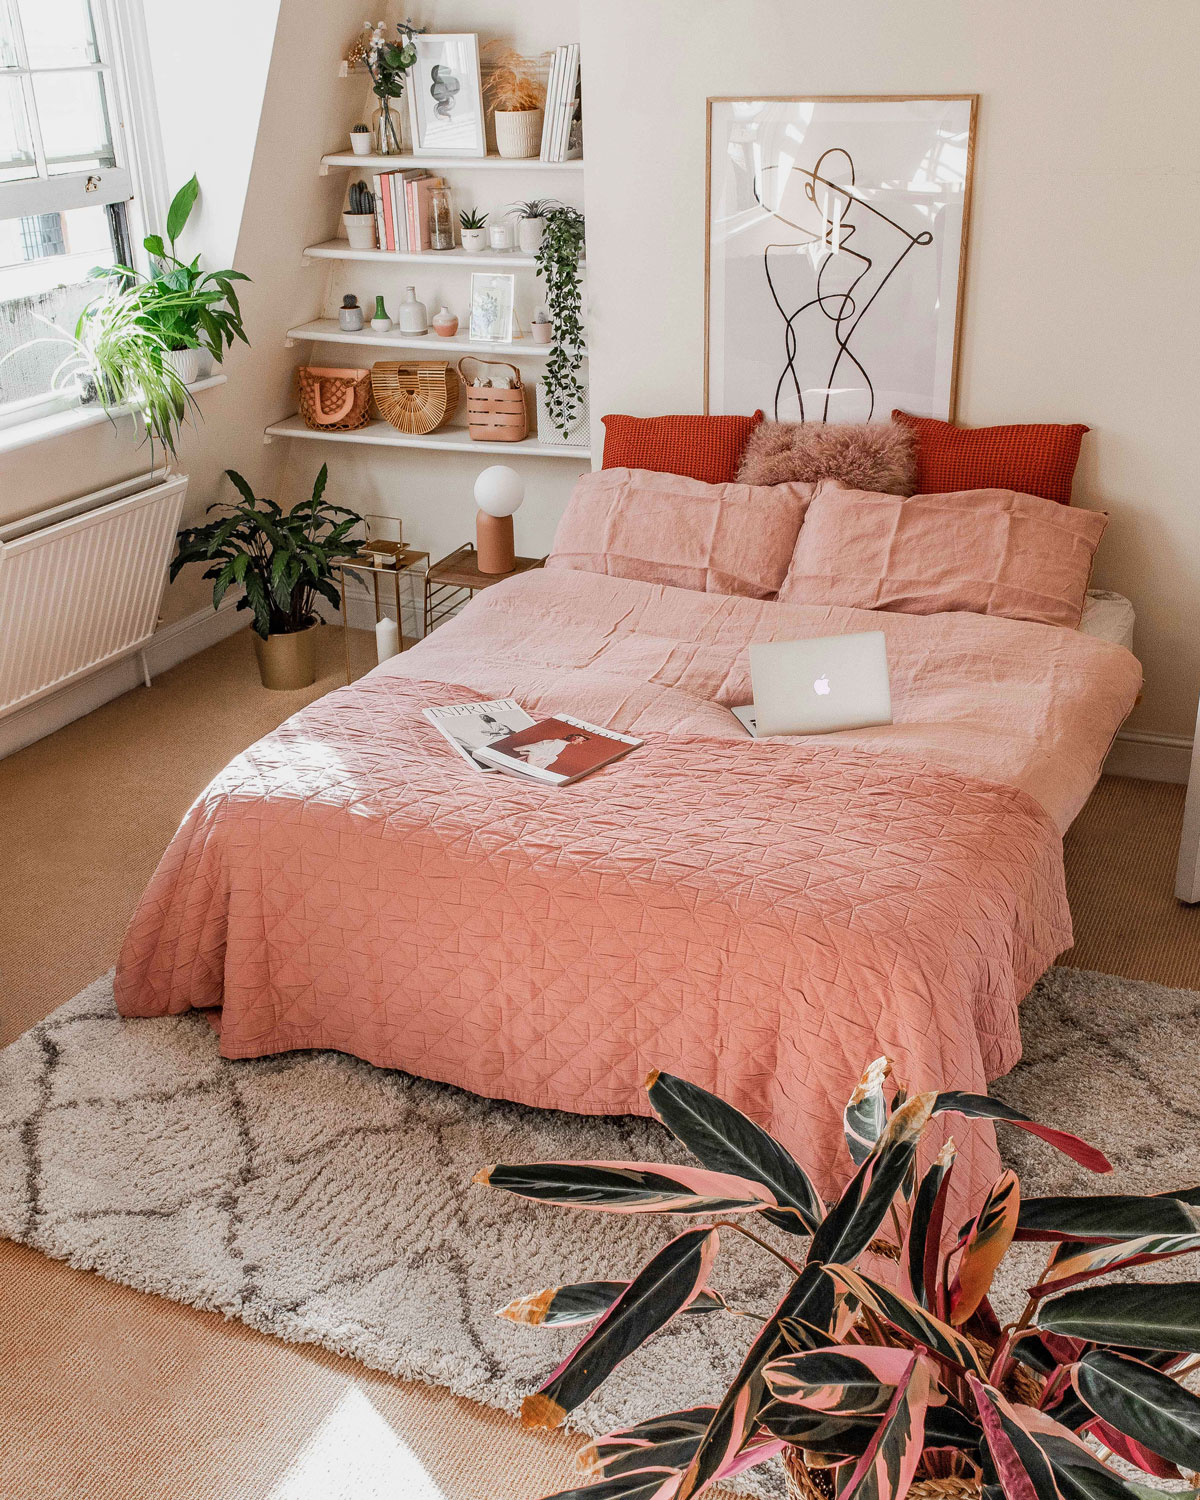 5 Bedroom Decor Ideas for a Spring Update , Kelsey in London